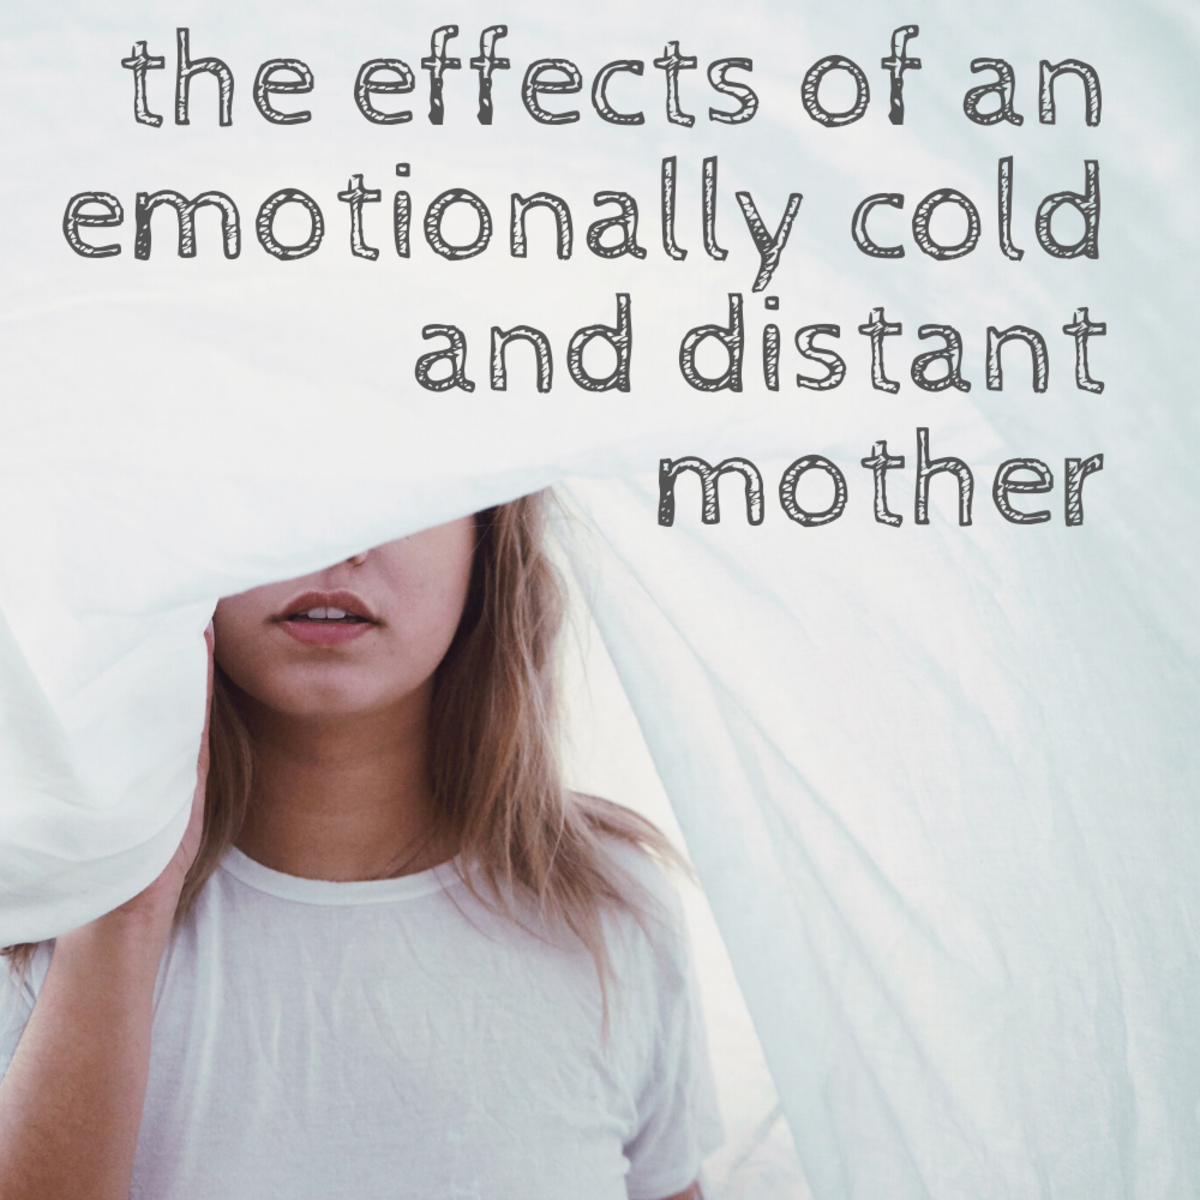 How to recognize and heal from an emotionally cold and distant mother.